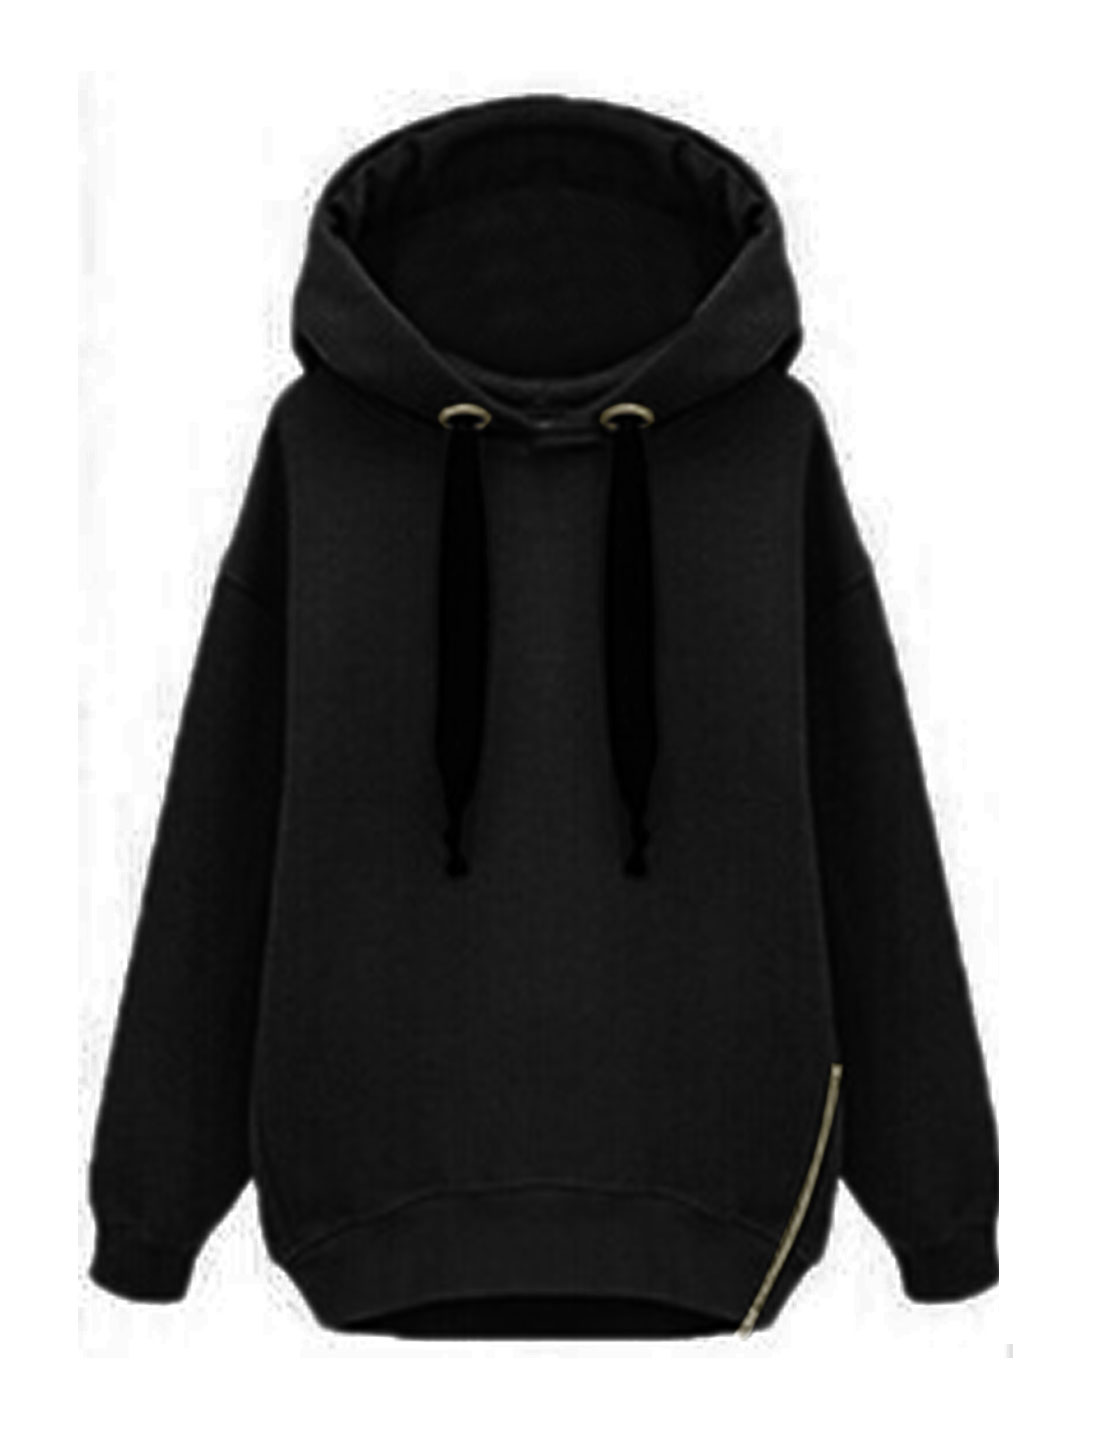 Woman Zipper Side Soft Lined Hooded Dolman Sweatshirt Black XS